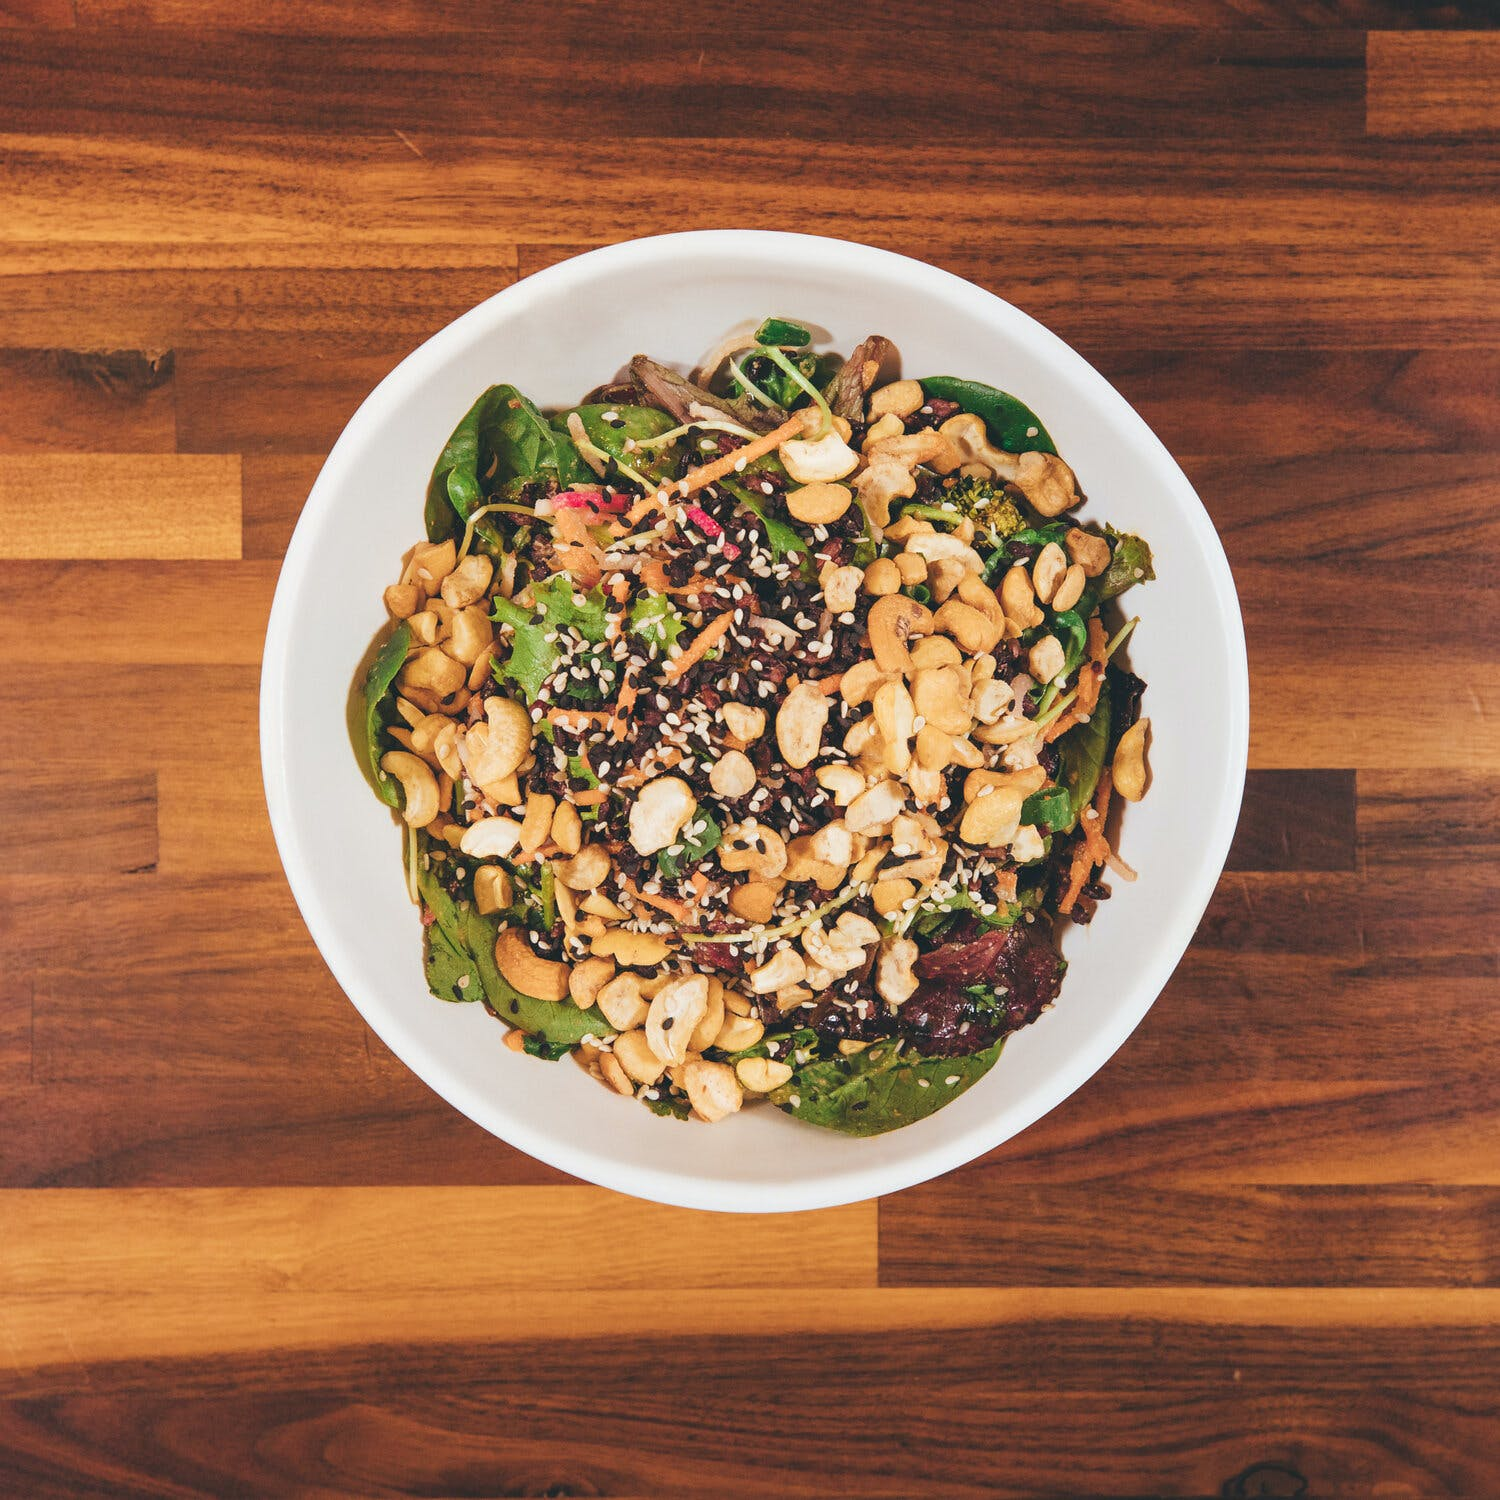 Thai Cashew Bowl (V)(GF) from Forage Kitchen - Hilldale in Madison, WI